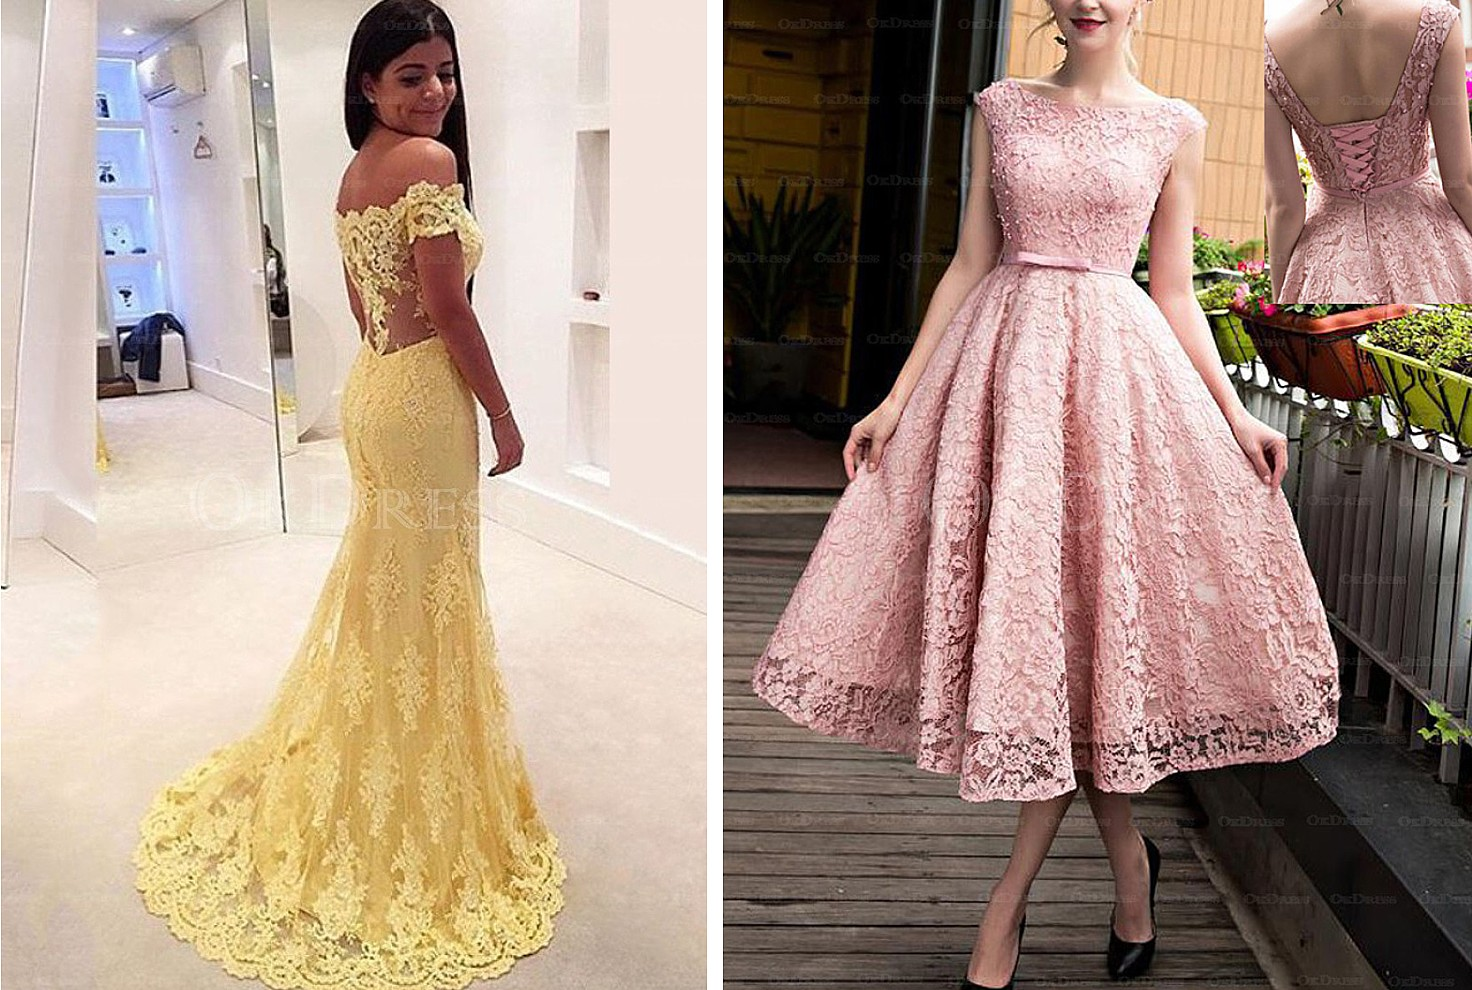 Sand Under My Feet: Prom Dresses in Pantone\'s Top 10 Colors of 2017